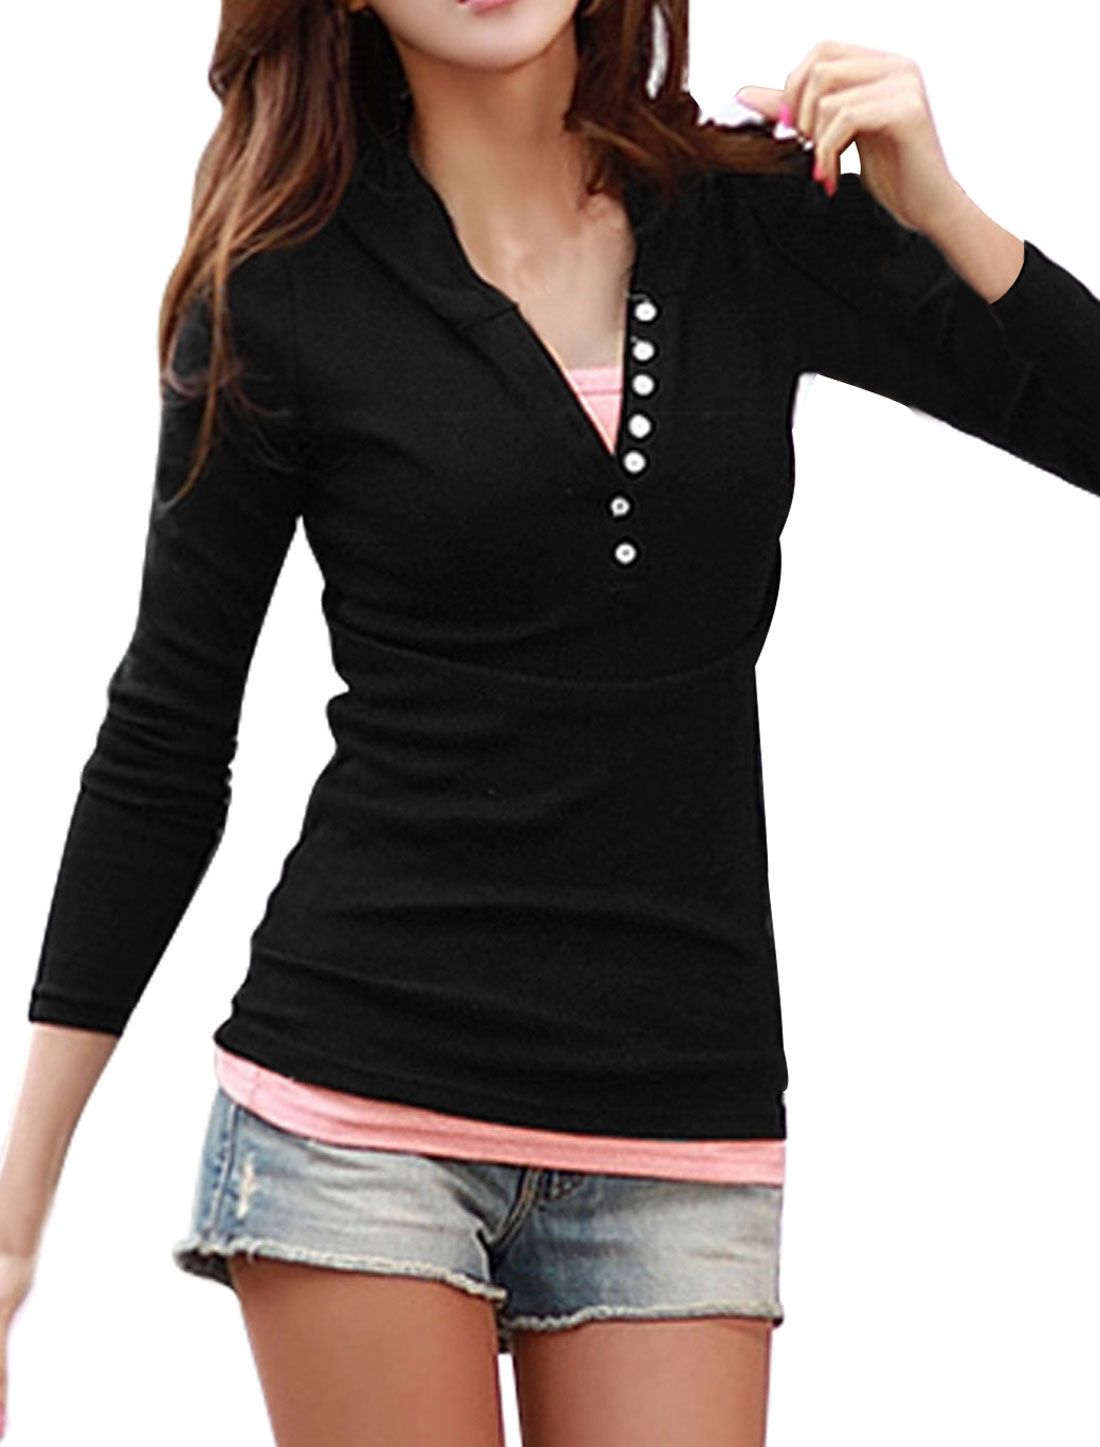 Women Long Sleeves Button Closed Upper Hooded Shirt Black M